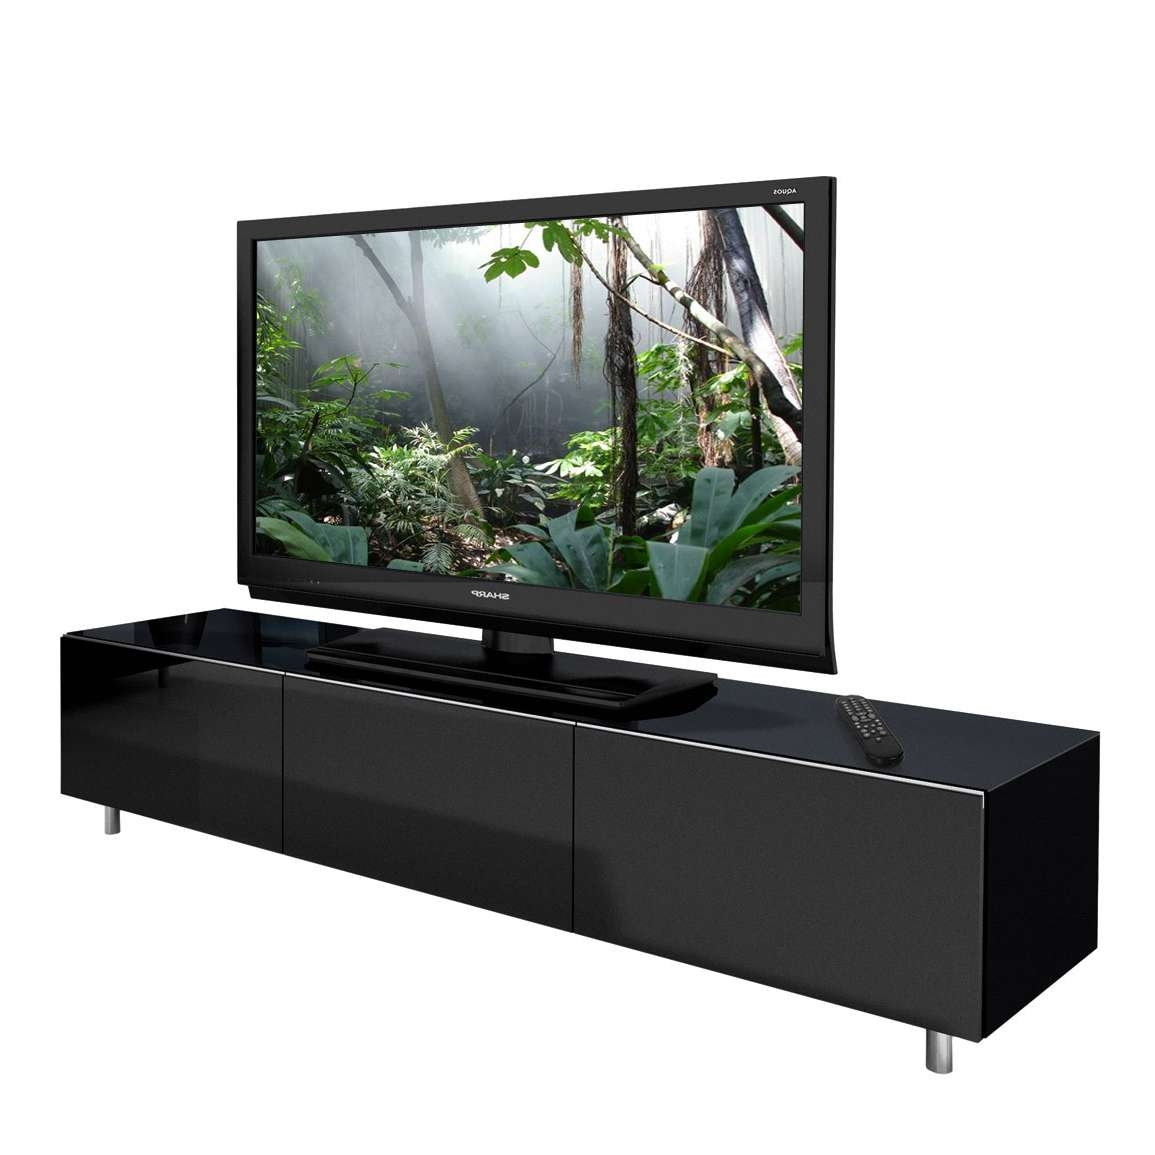 Just Racks Jrl1650 Gloss Black Tv Cabinet – Black Tv Stands Inside Black Gloss Tv Cabinets (View 12 of 20)